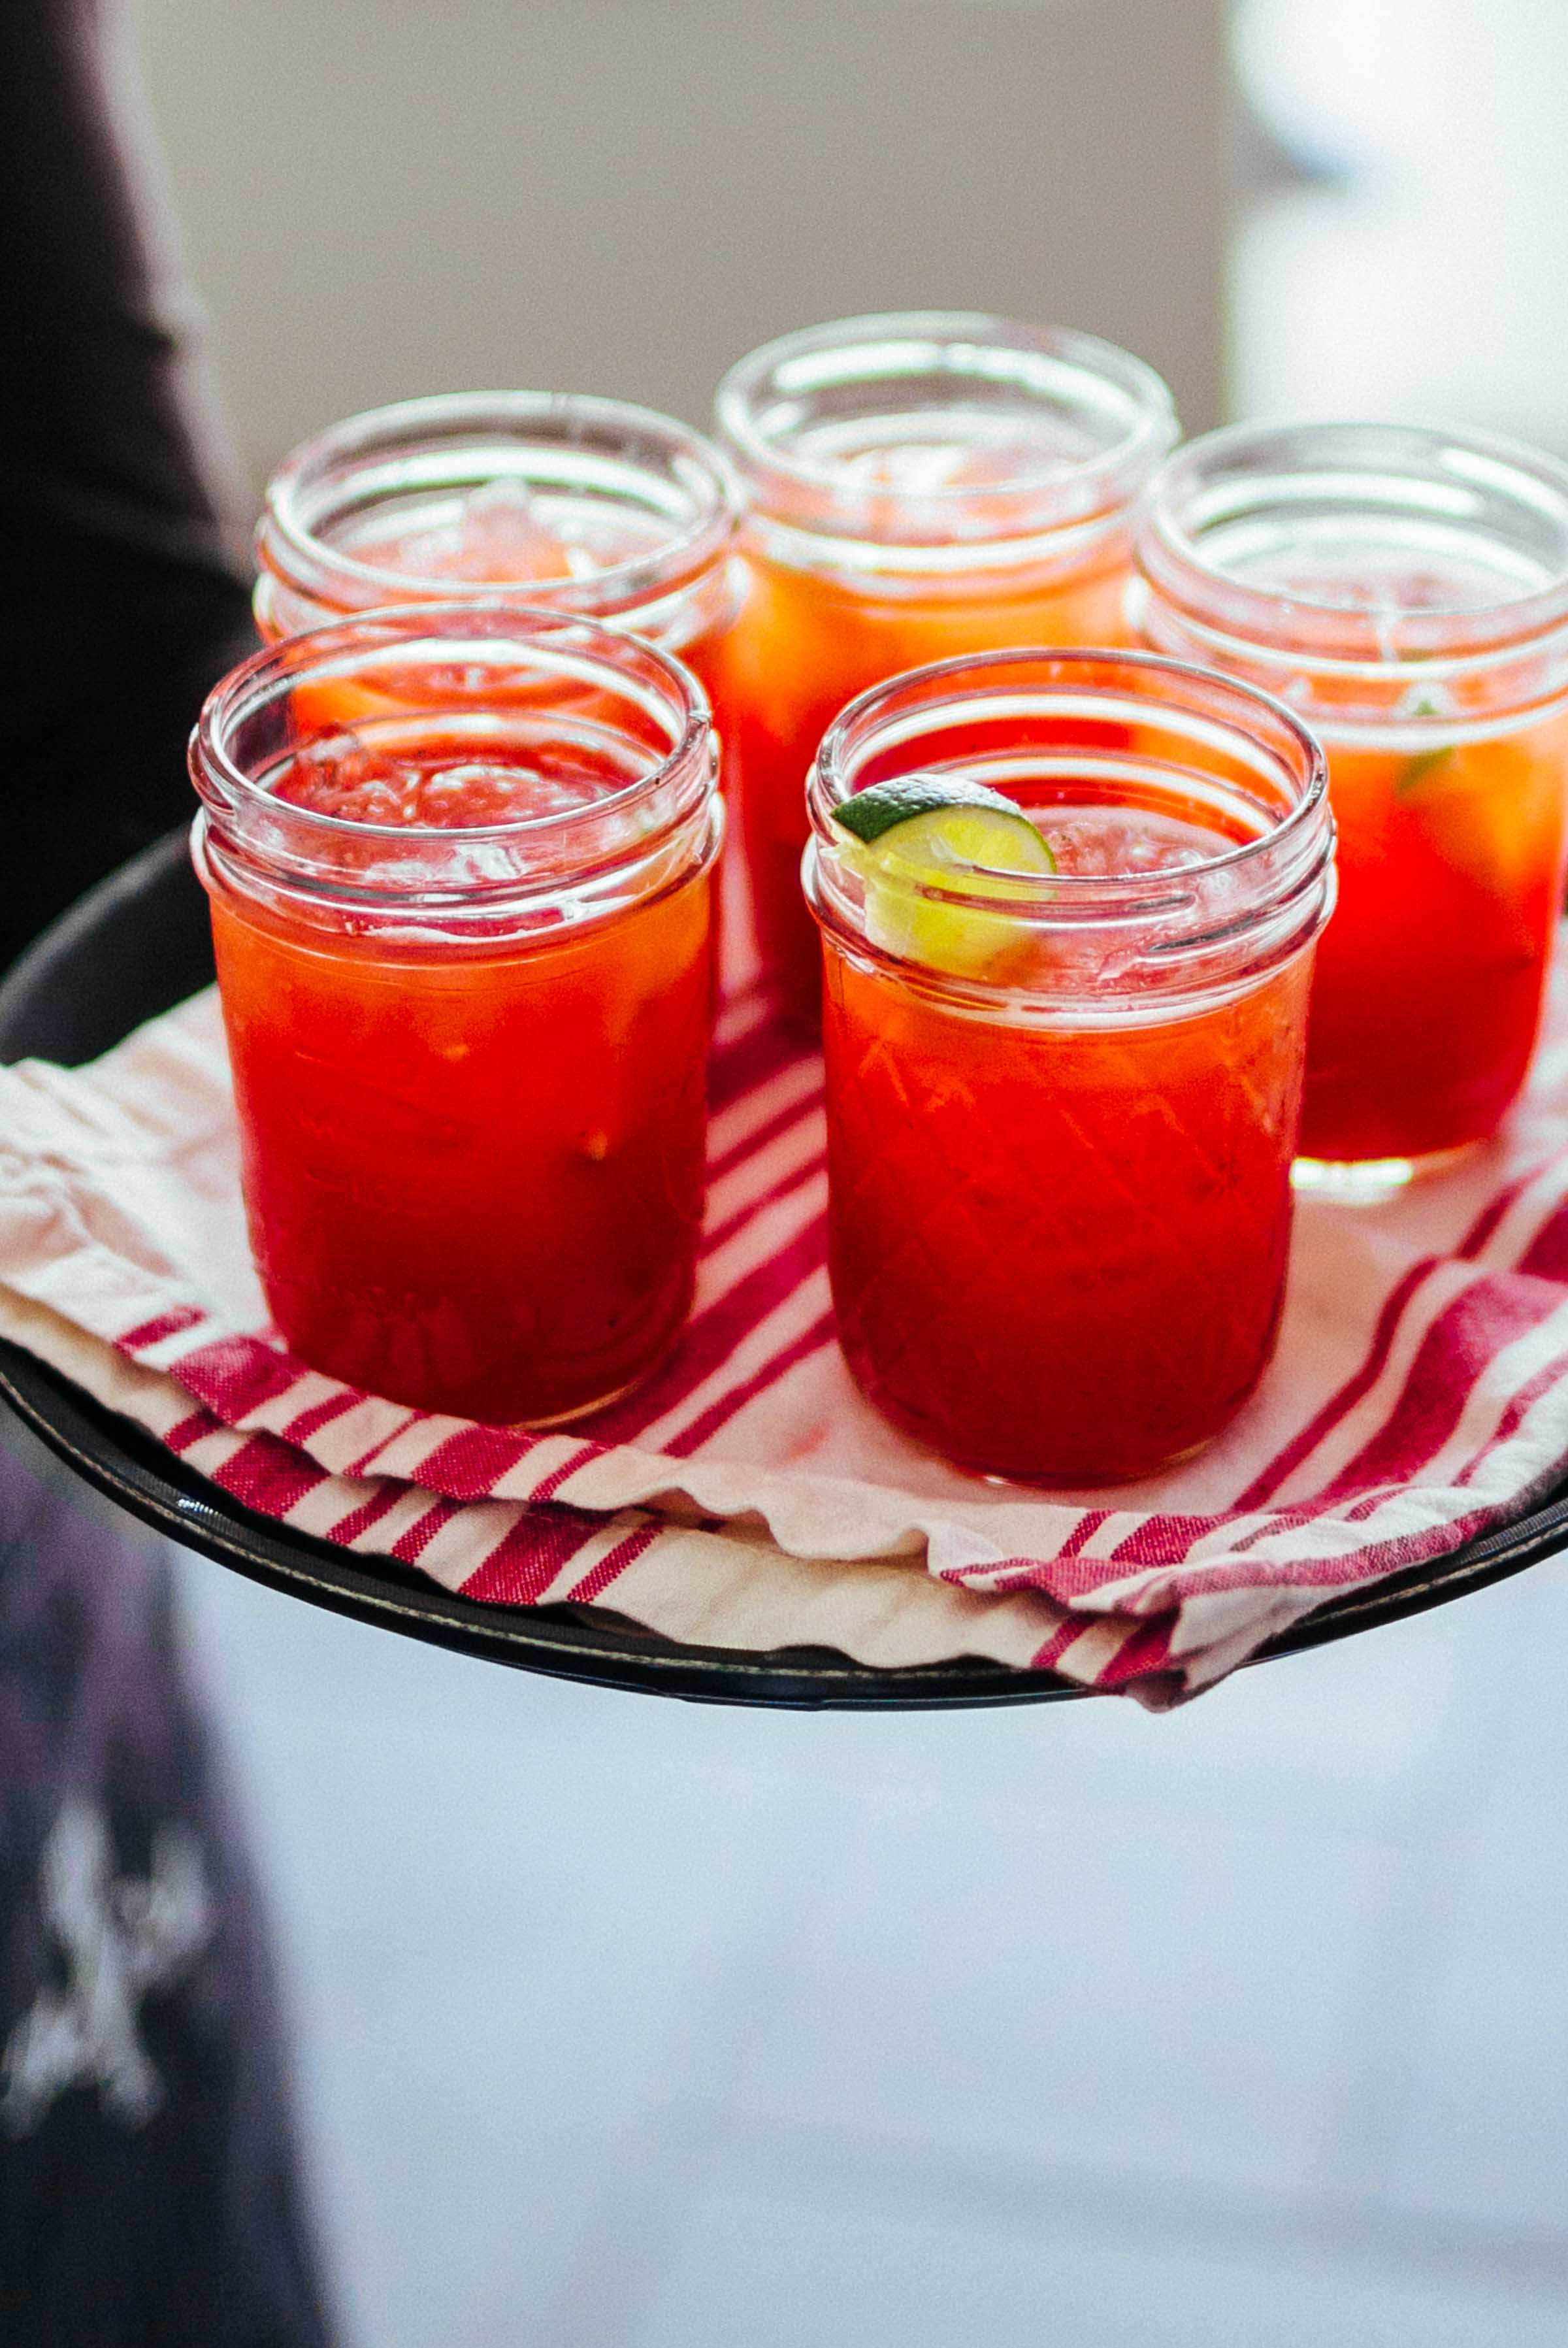 Make this fresh strawberry and tequila cocktail recipe for your brunch or summer party